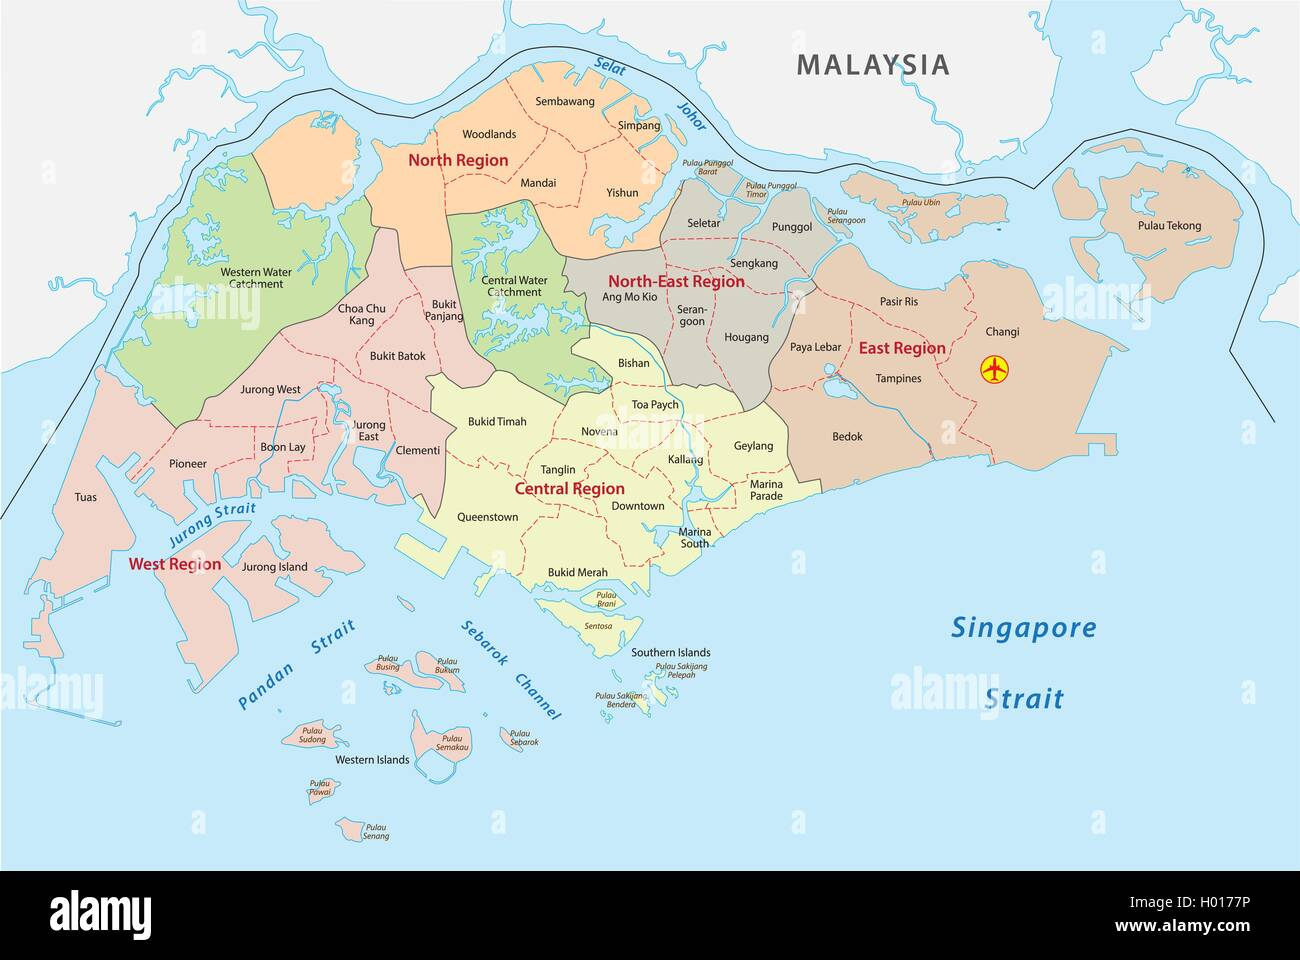 Administrative divisions map of the Republic of Singapore Stock